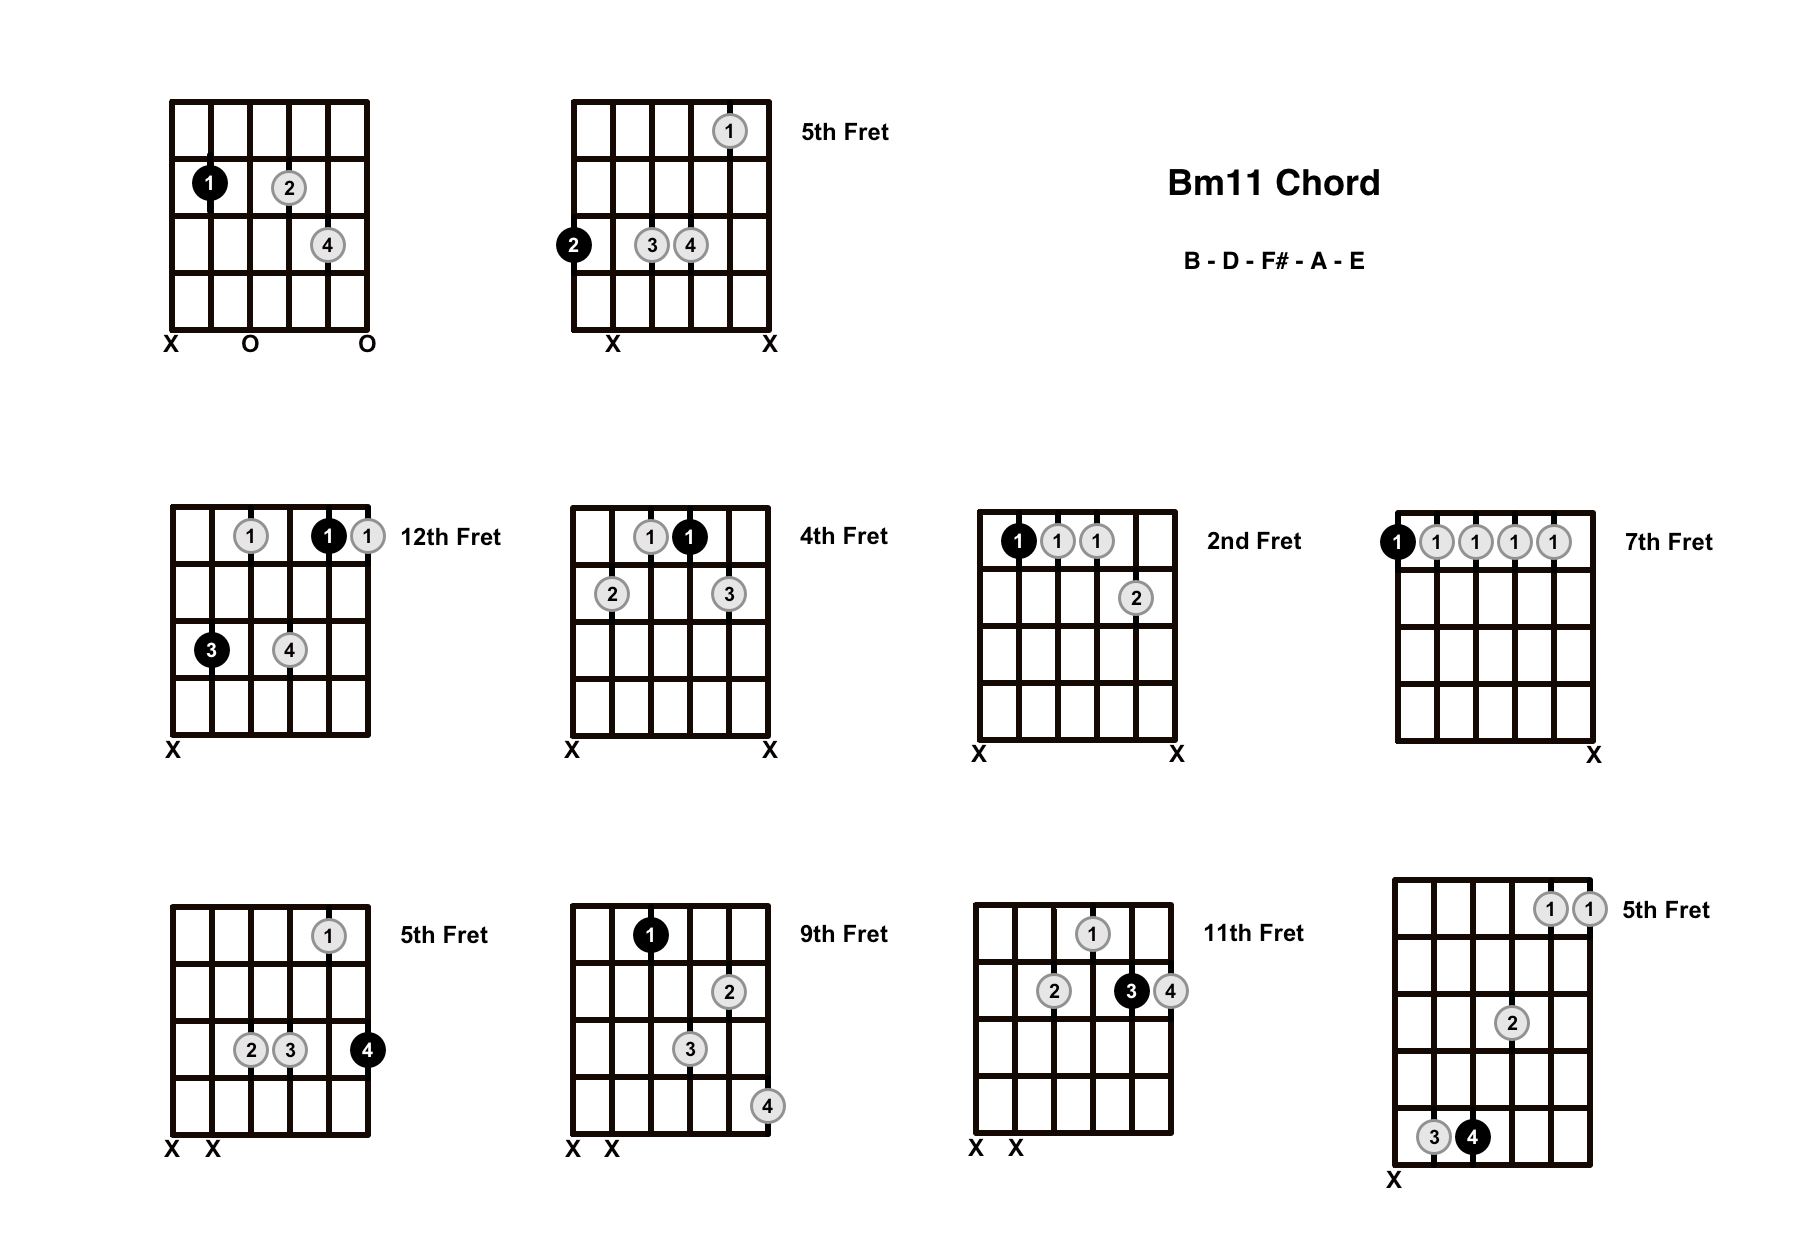 Bm11 Chord On The Guitar (B minor 11) – Diagrams, Finger Positions and Theory